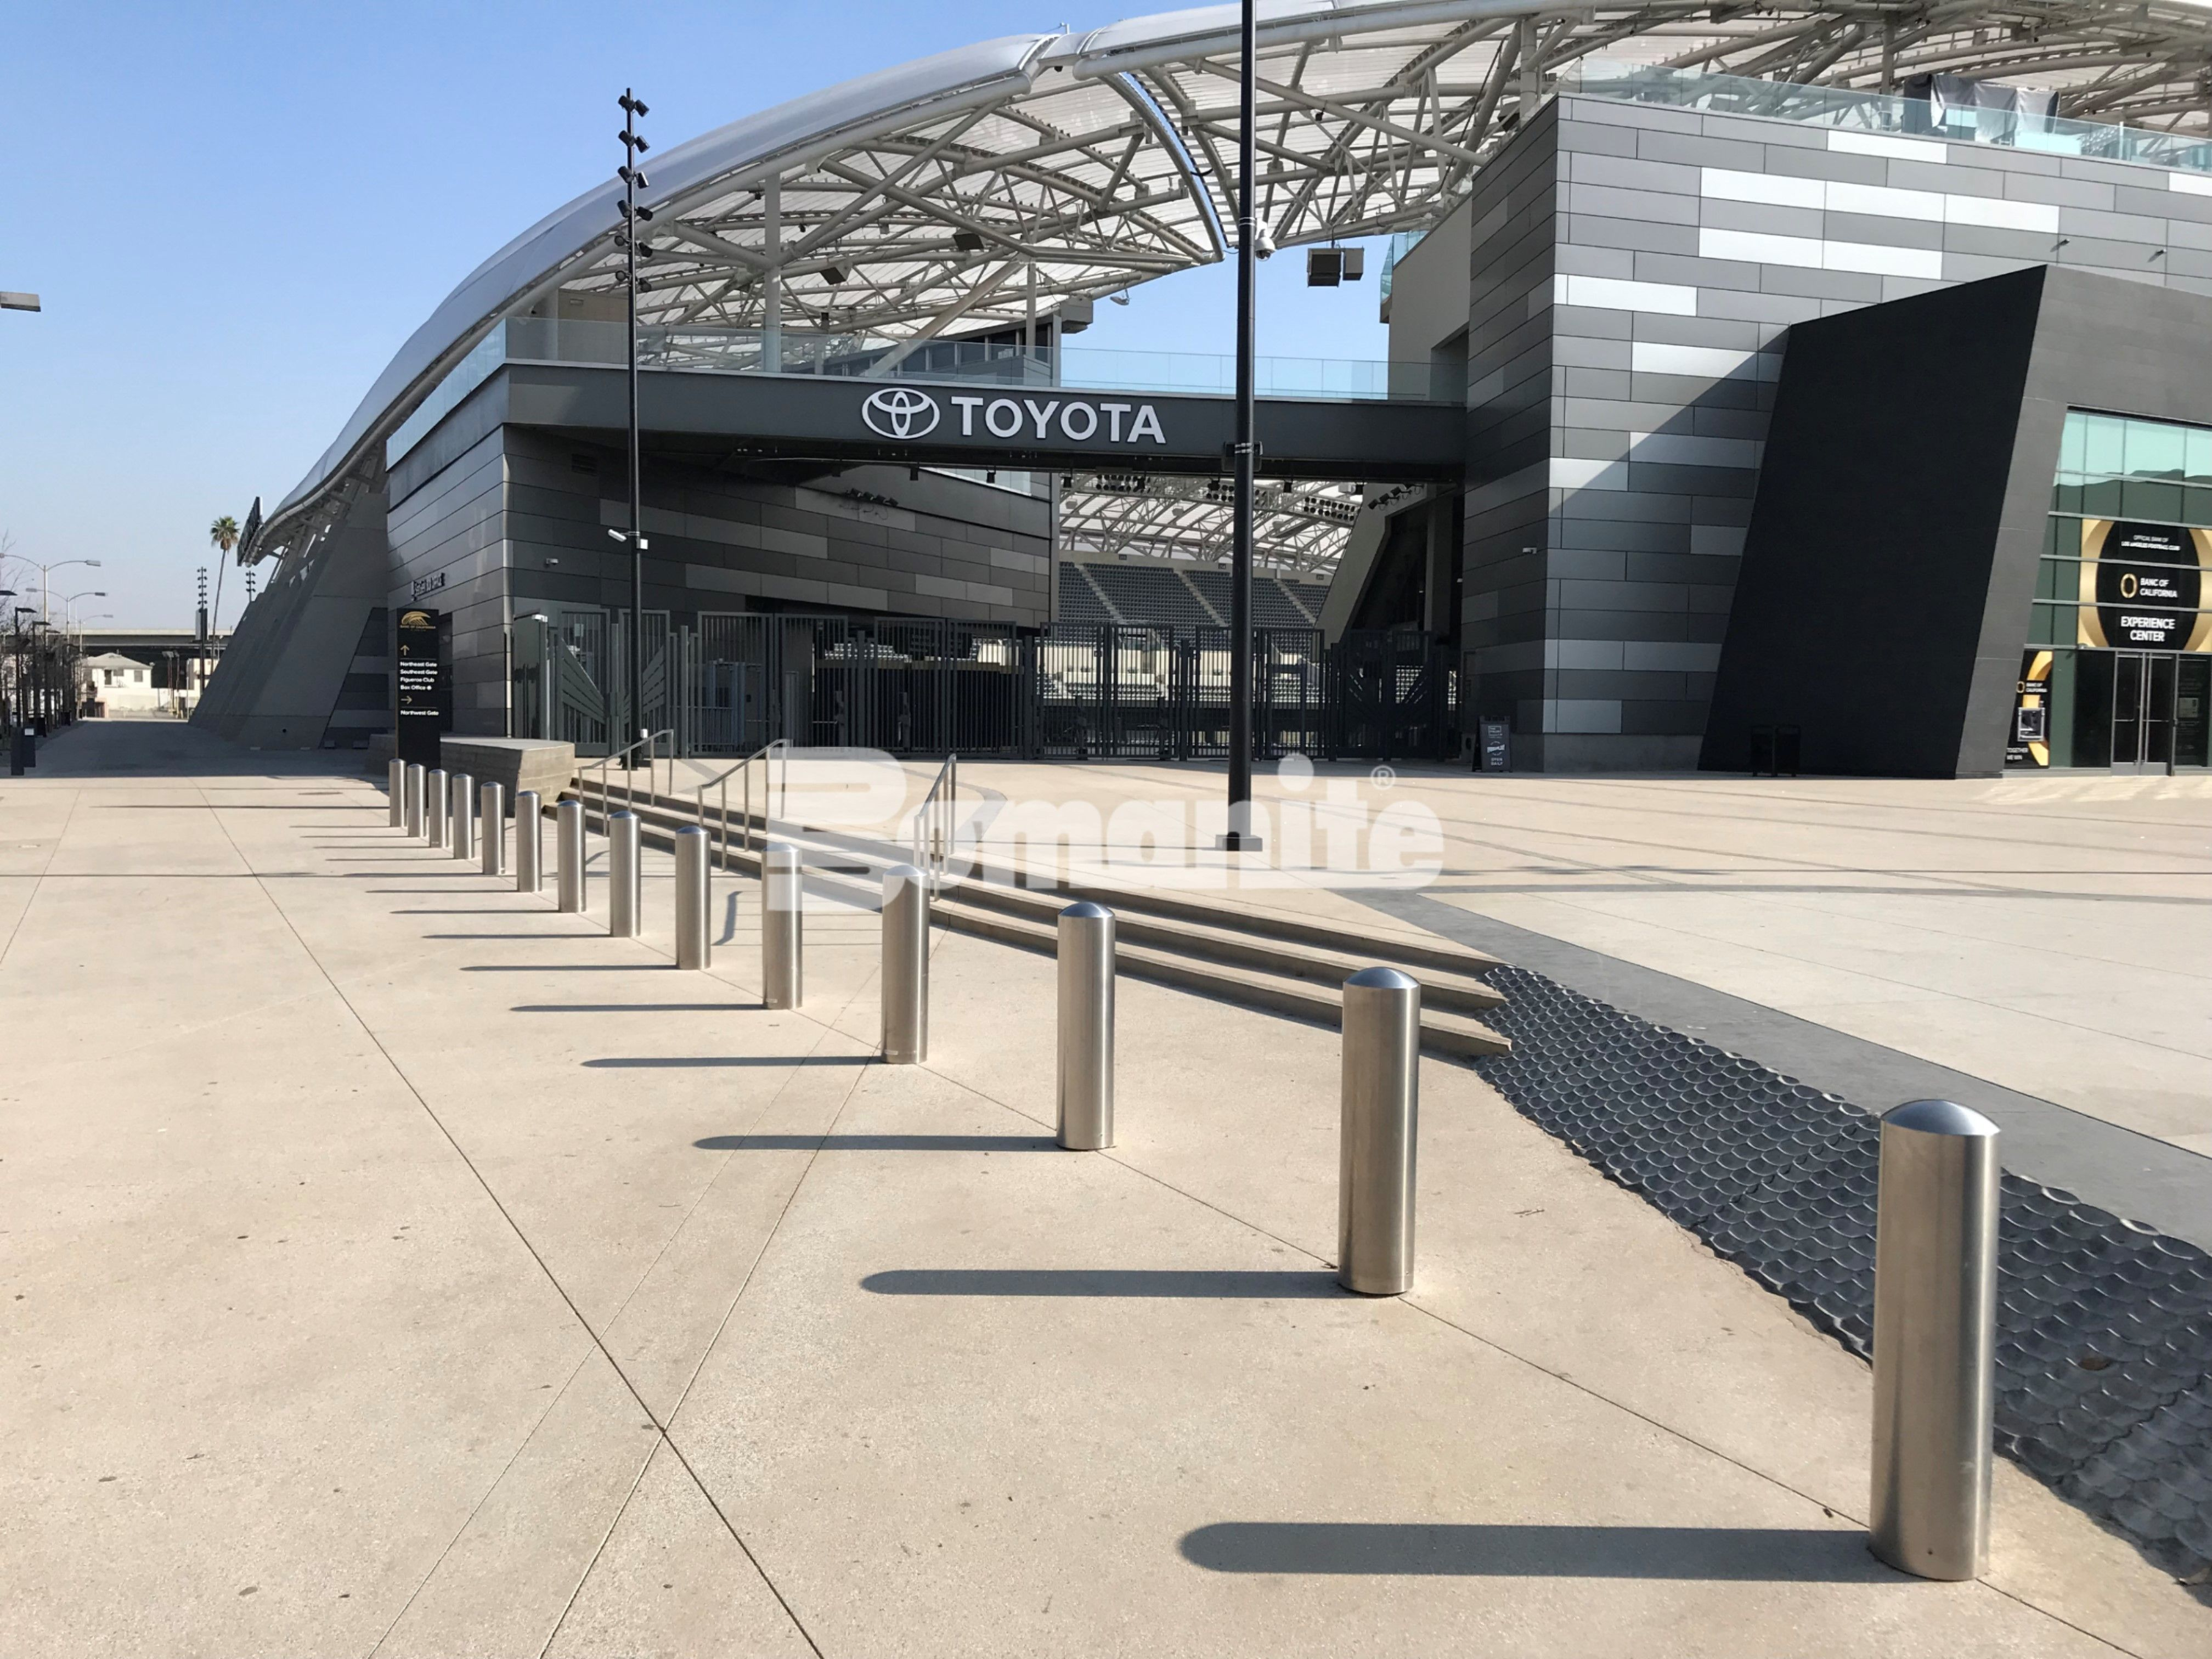 Banc of Calif LAFC Stadium decorative concrete installed by Bomel Construction featuring Bomanite Sandscape Texture Walkway with Bomanite Alloy Gray Bands.